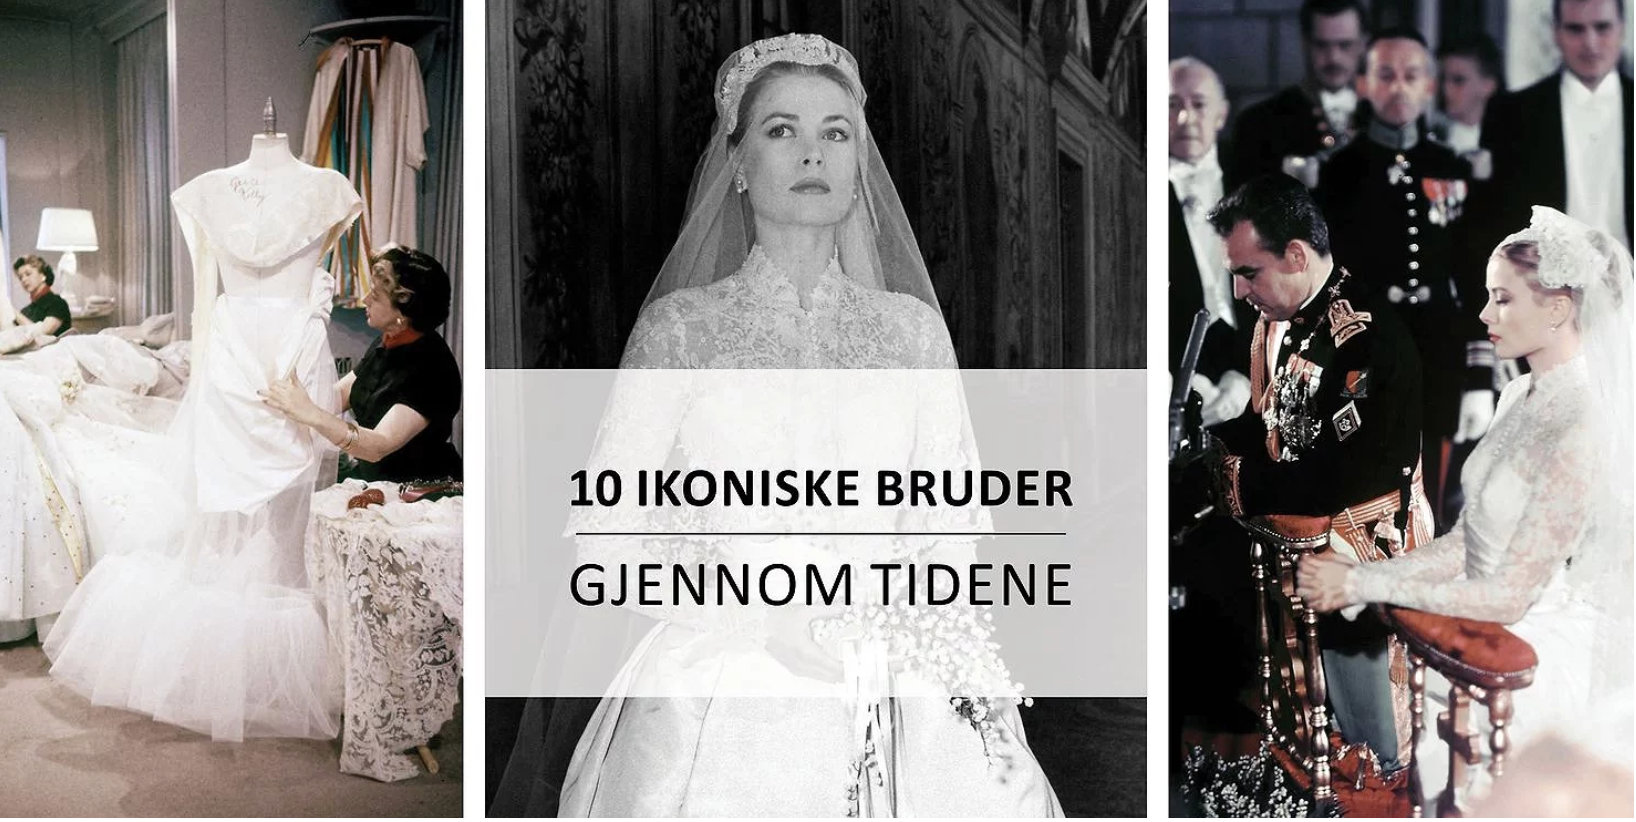 ikoniske bruder marry & juliet